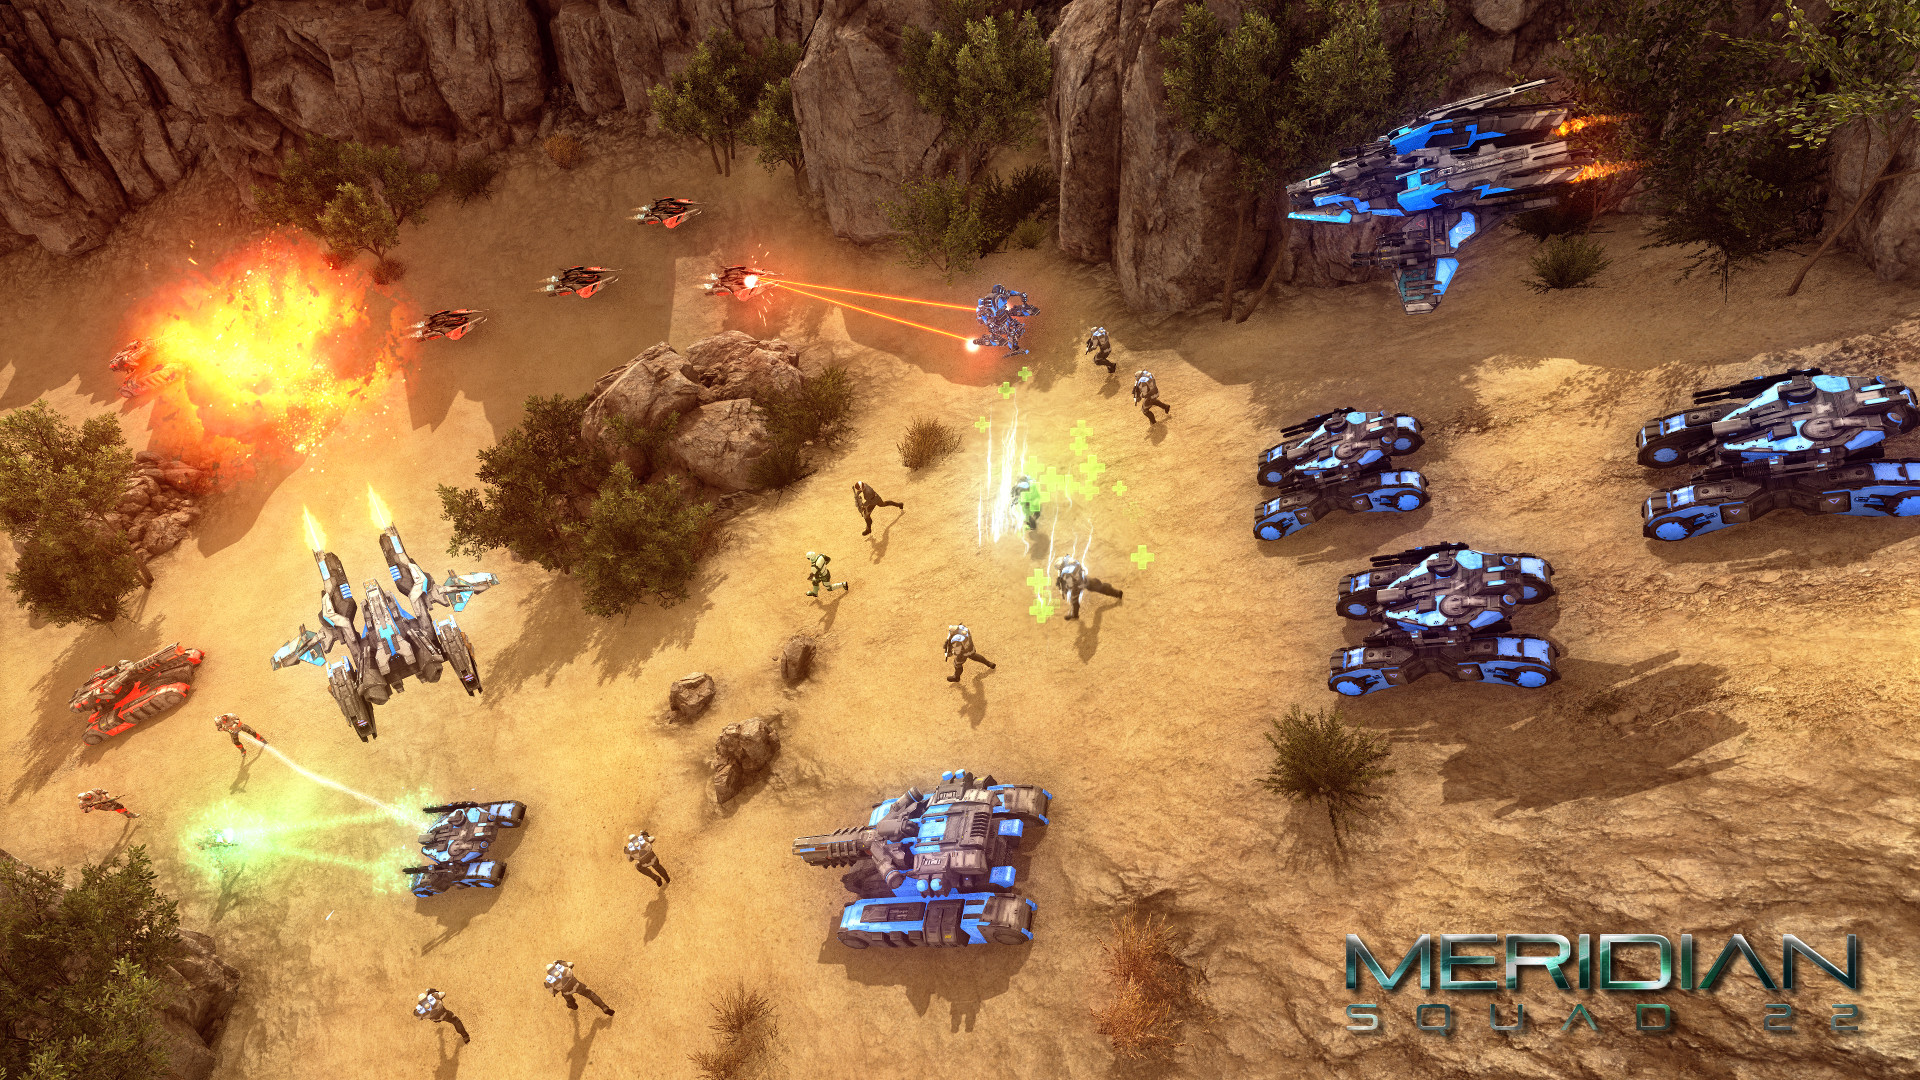 Meridian: Squad 22 screenshot